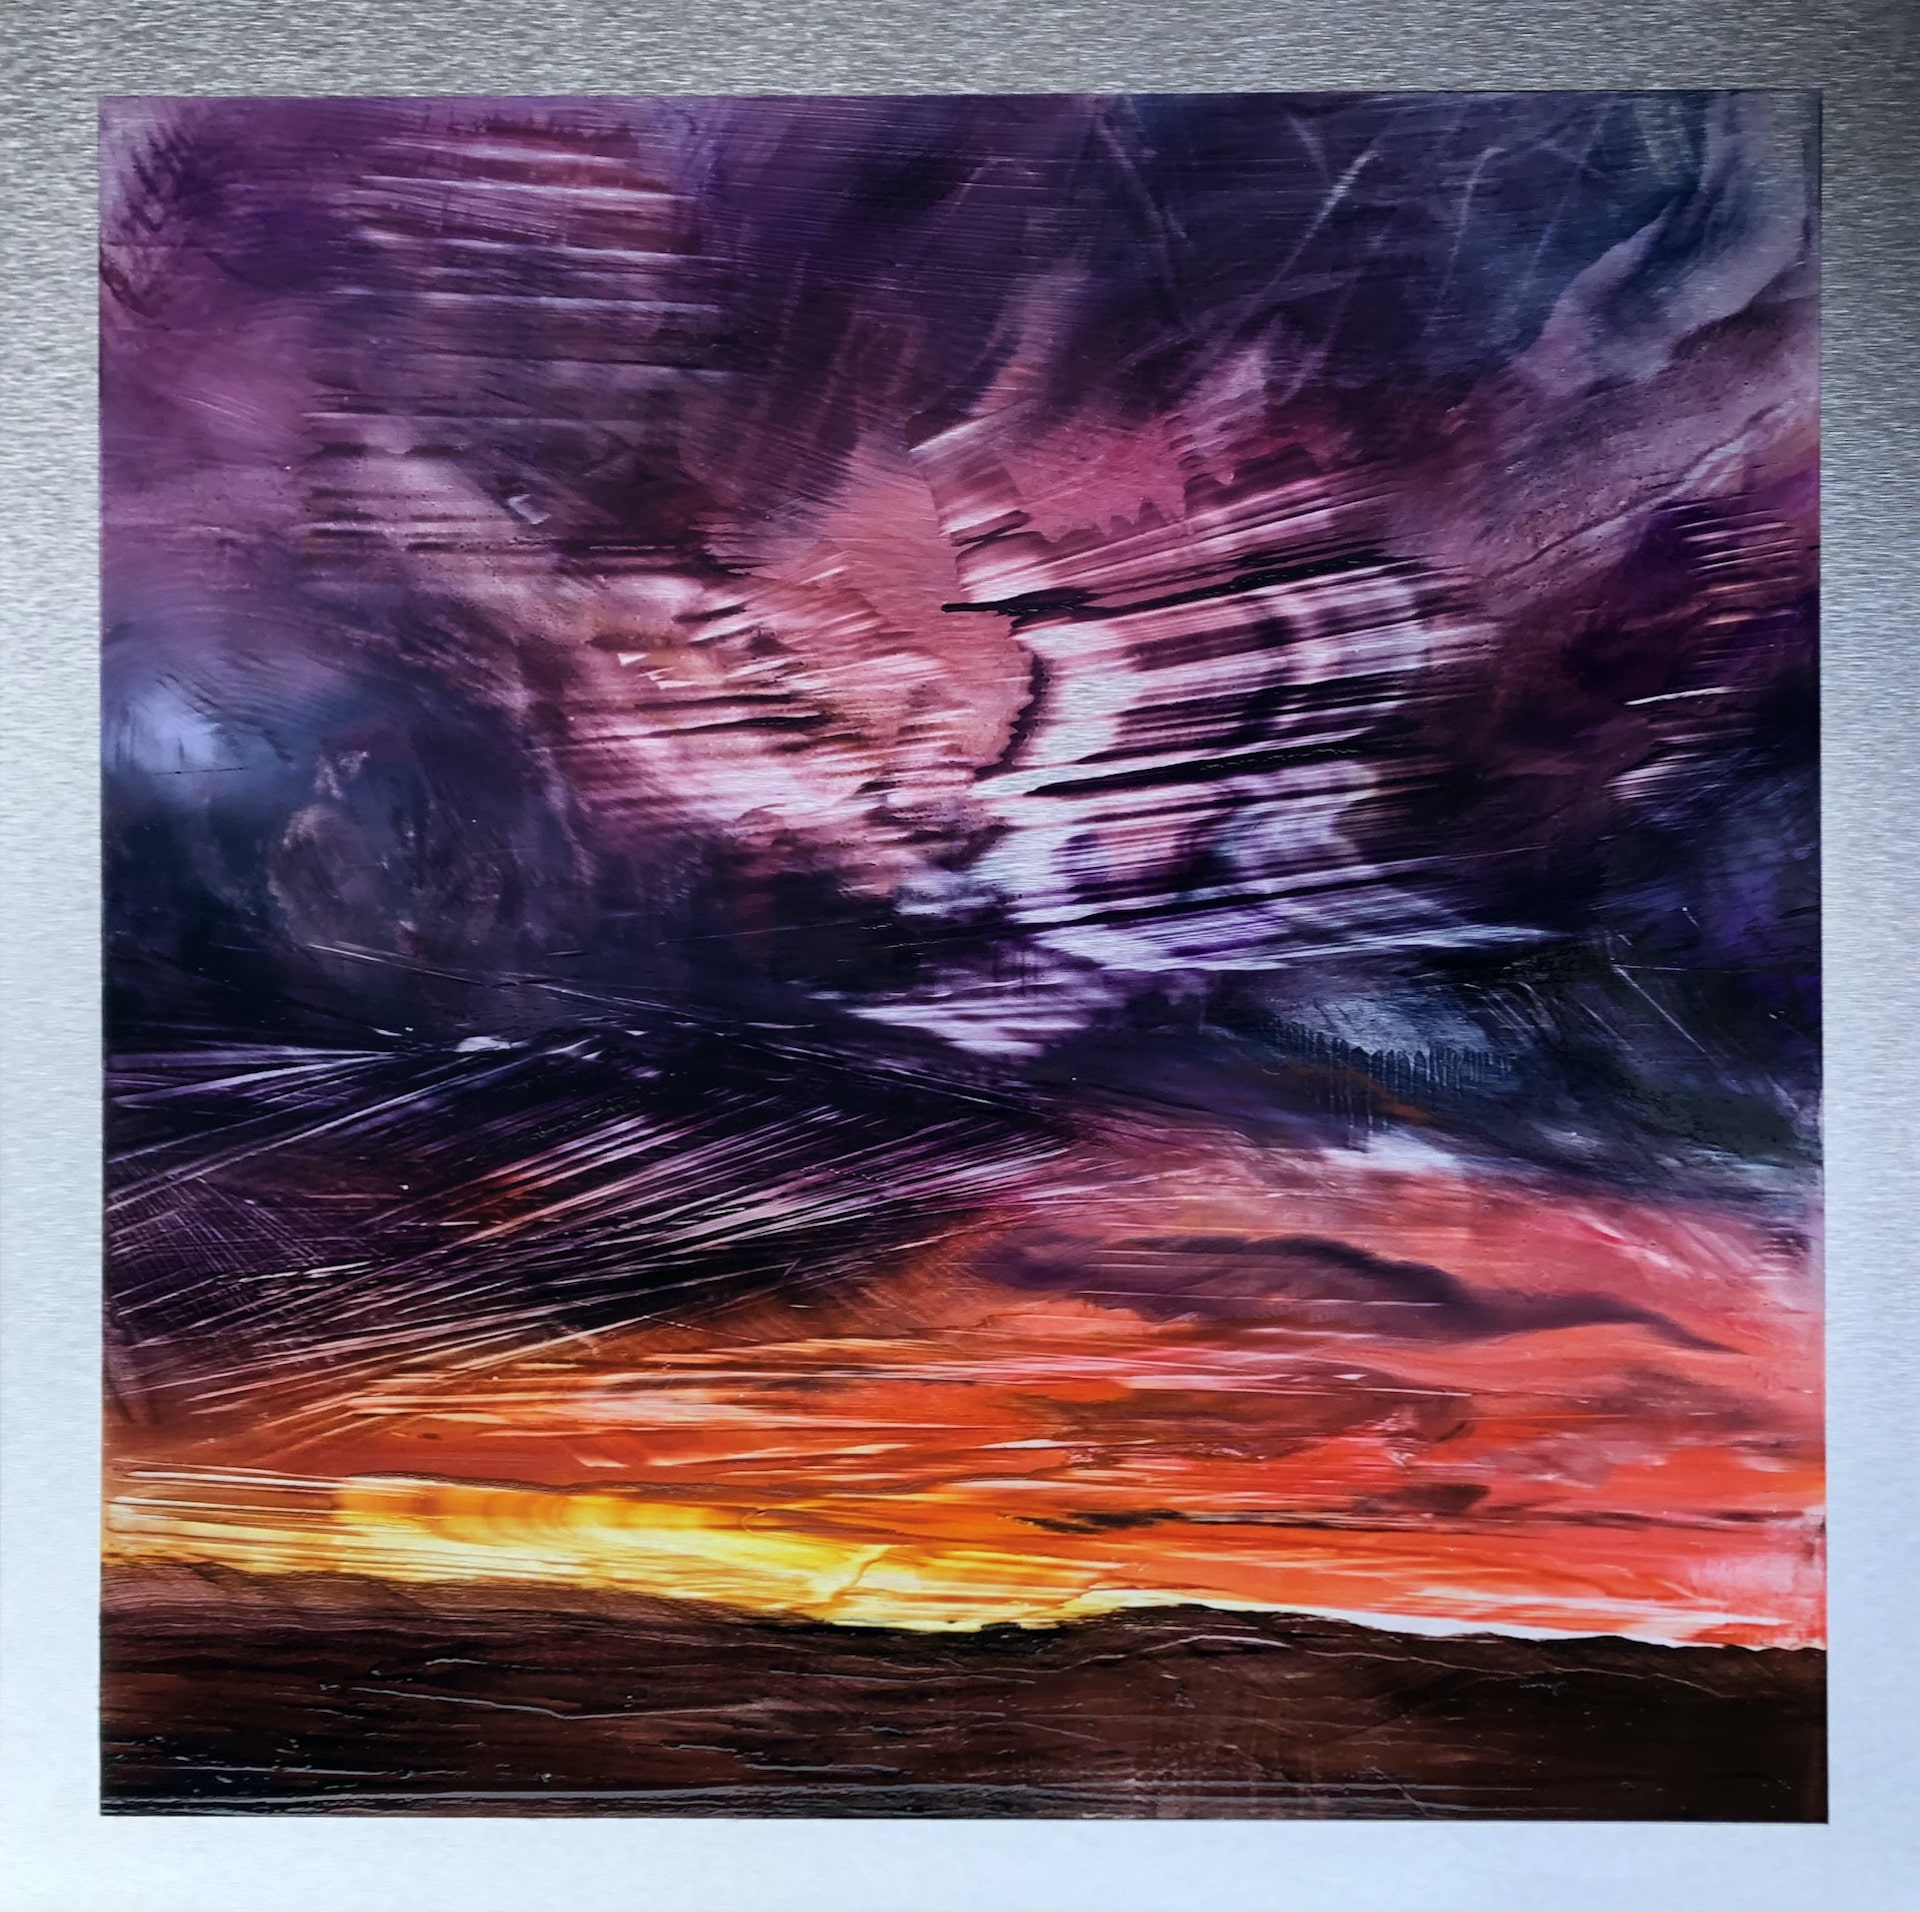 An original oil painting on metal panel by artist Cynthia McLoughlin of a flaming, dramatic sunset.